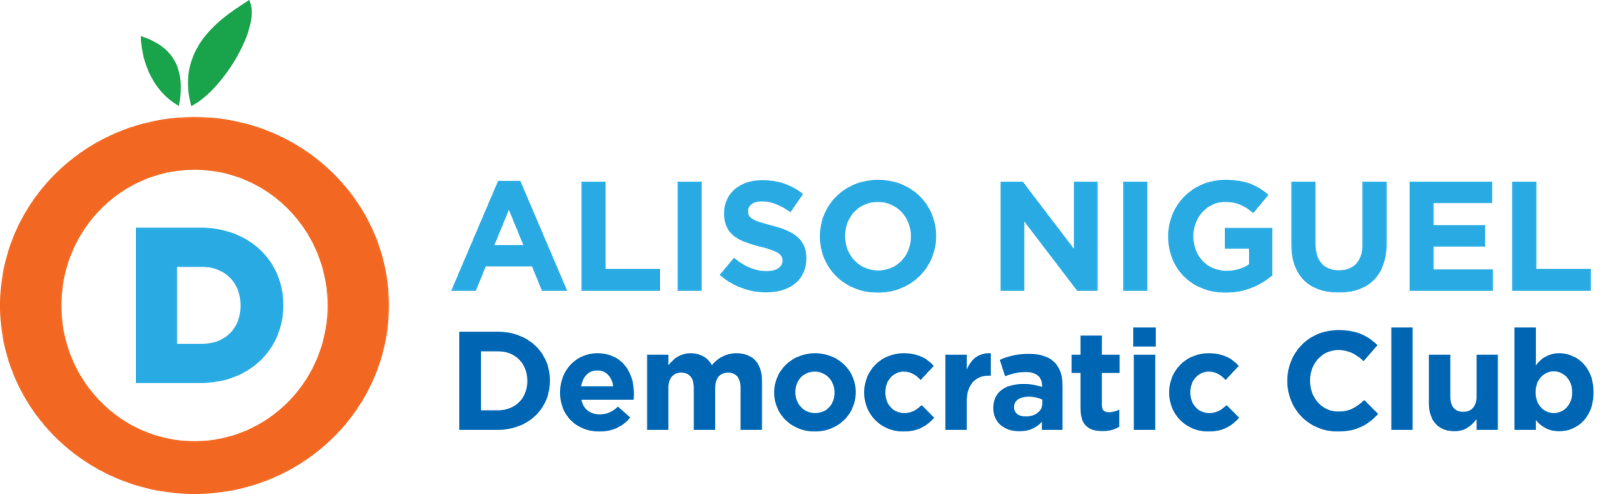 Aliso Niguel Democratic Club